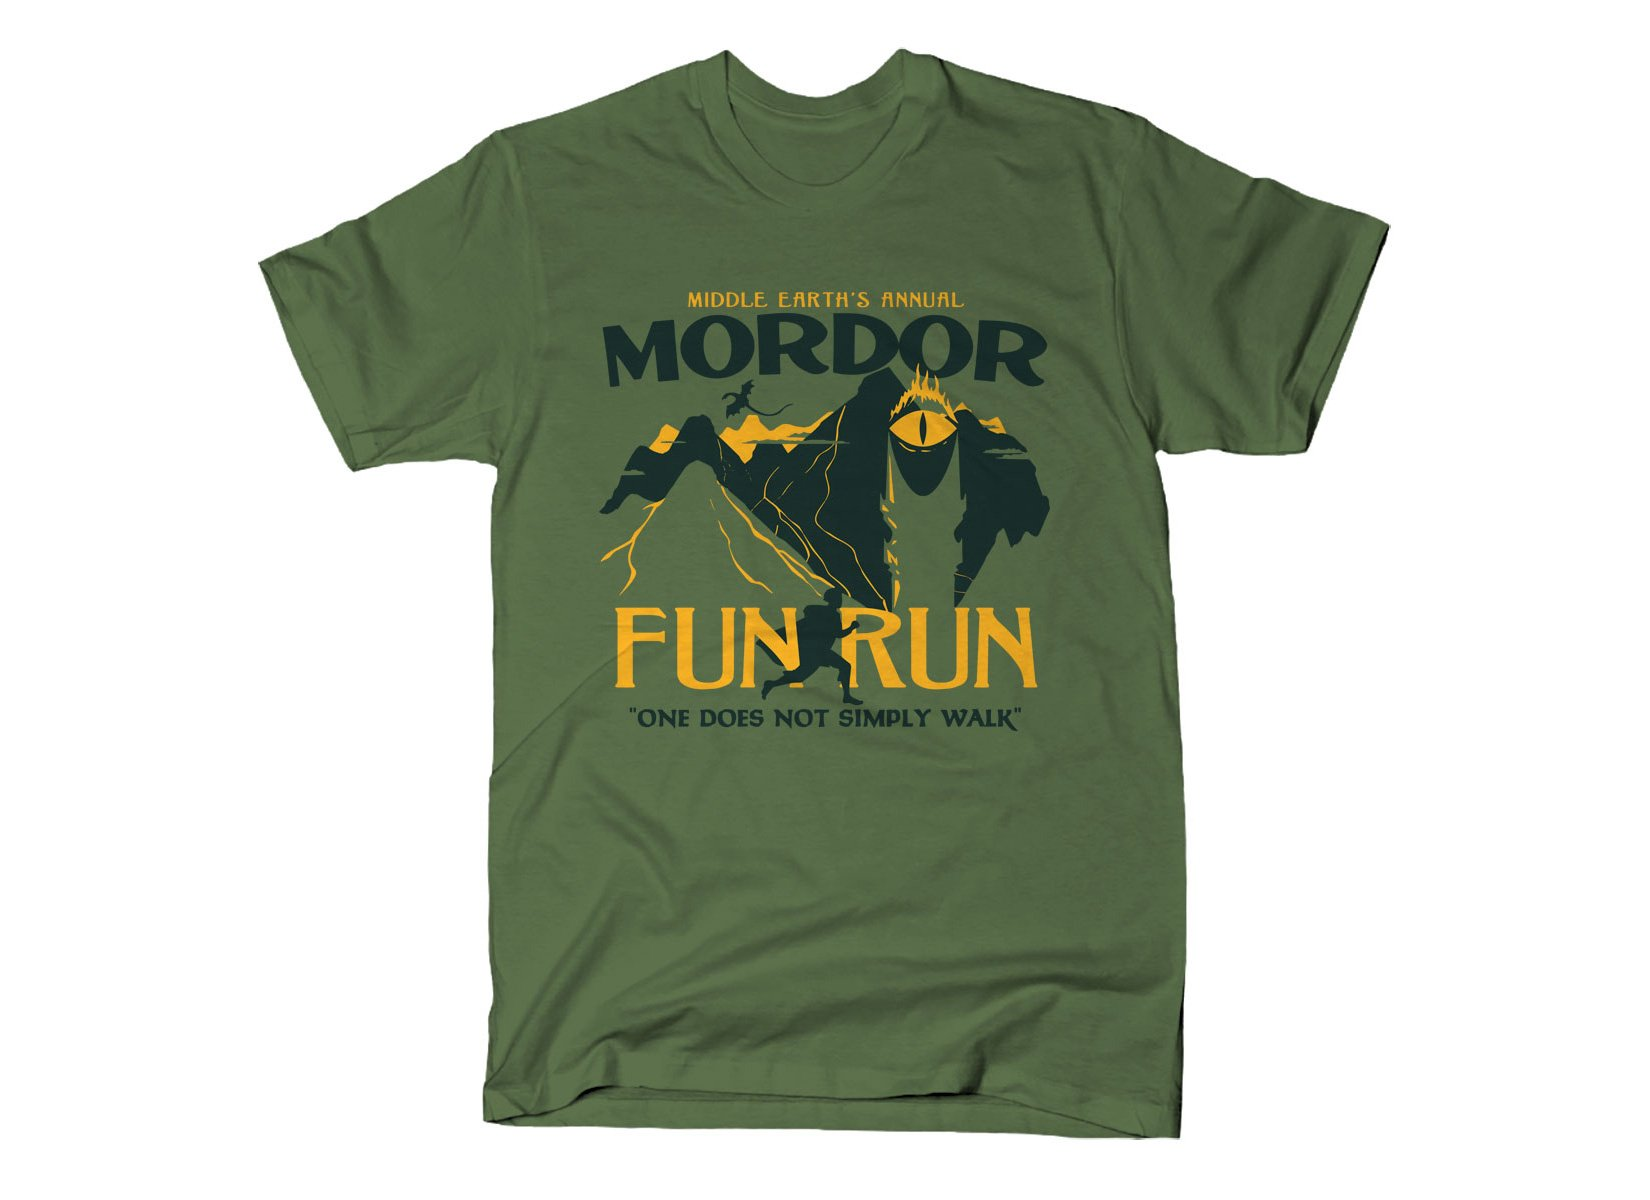 Mordor Fun Run on Mens T-Shirt